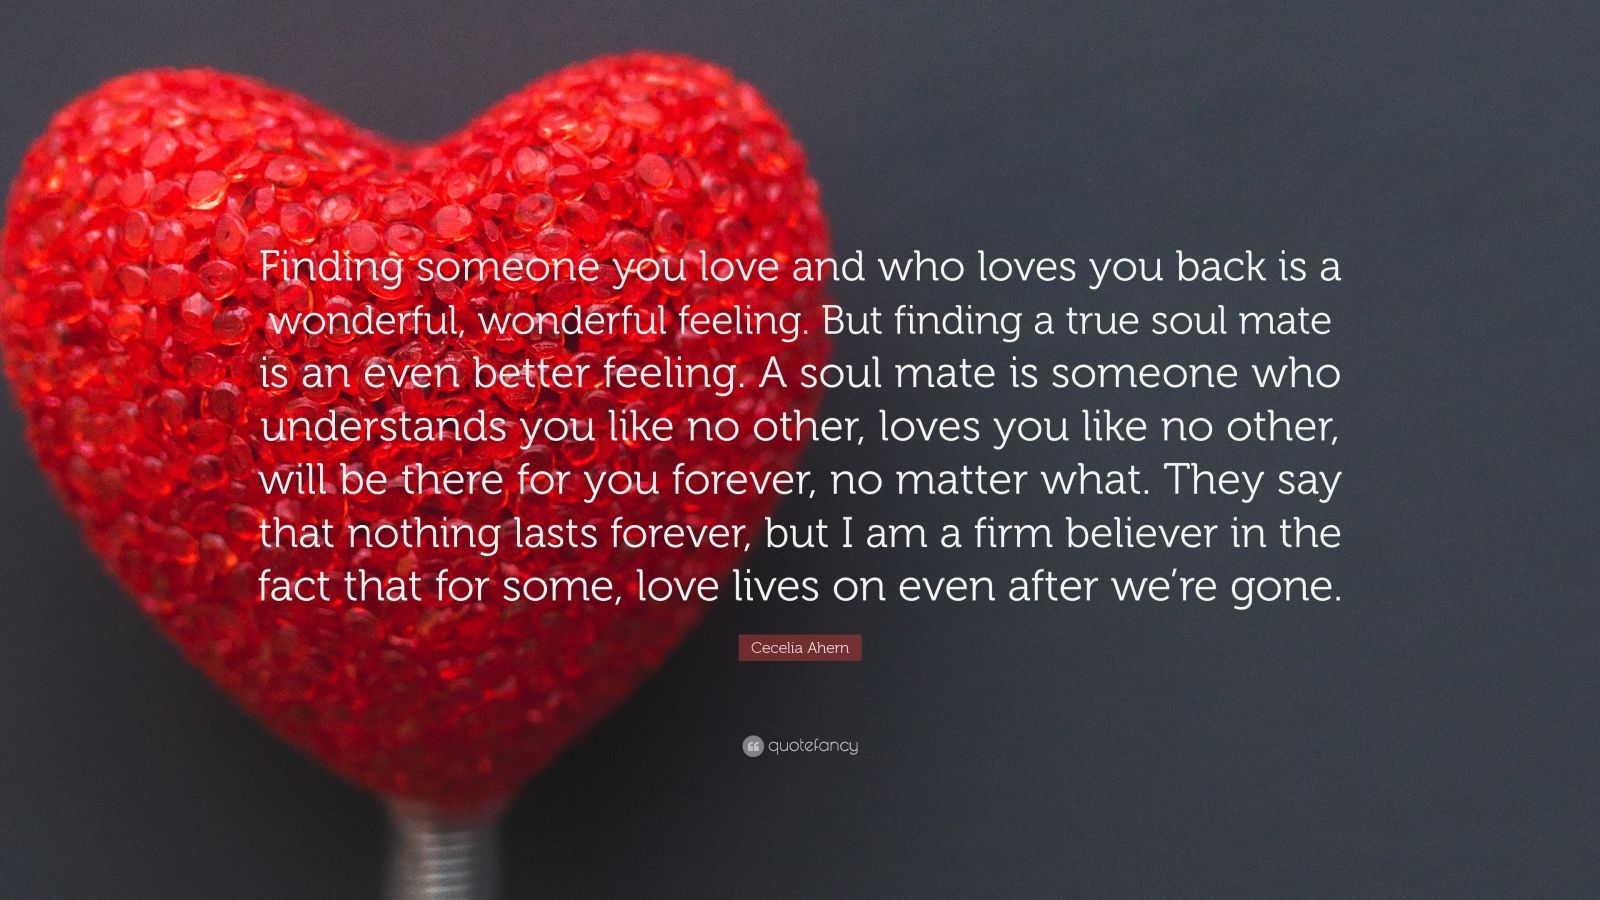 Love Wallpapers Matter : cecelia Ahern Quote: ?Finding someone you love and who loves you back is a wonderful, wonderful ...